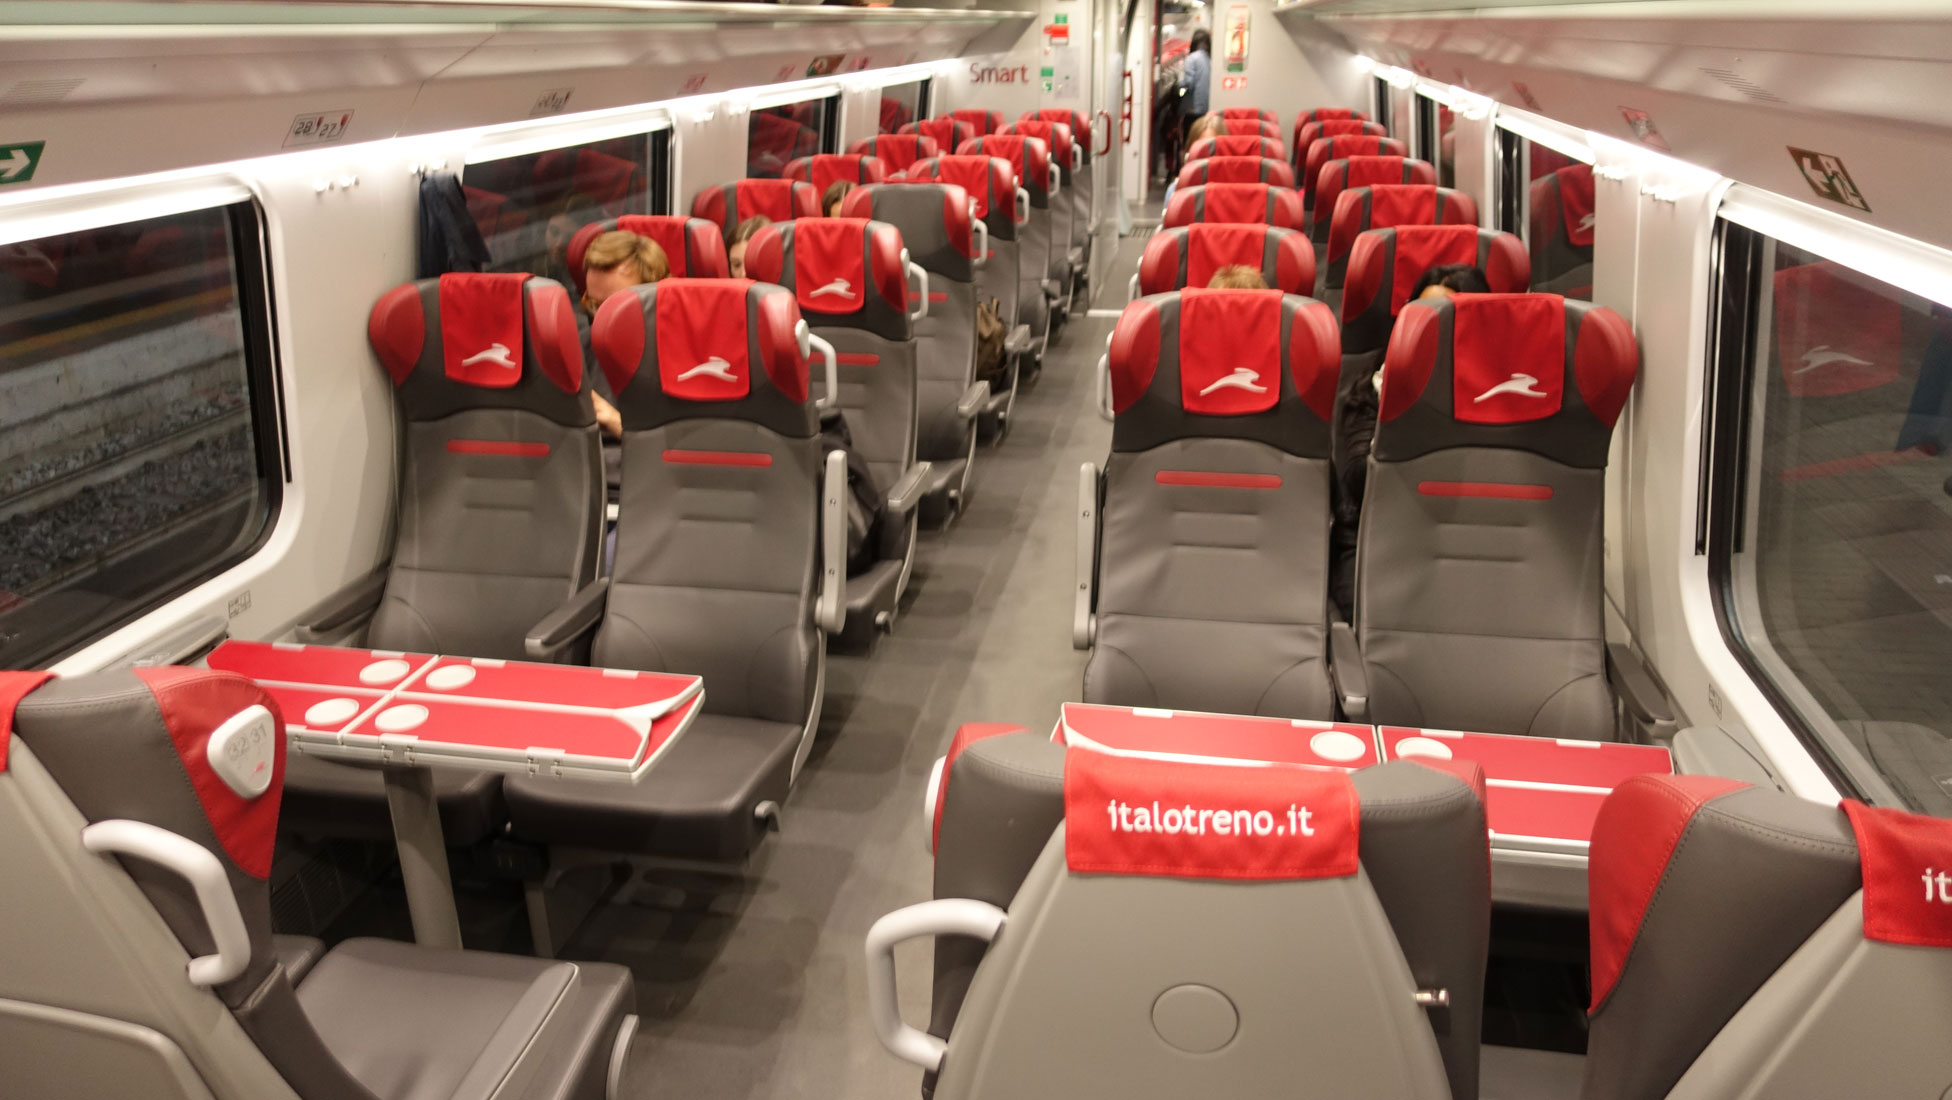 Remarkable Italo Trains Italo Tickets From 15 Beatyapartments Chair Design Images Beatyapartmentscom